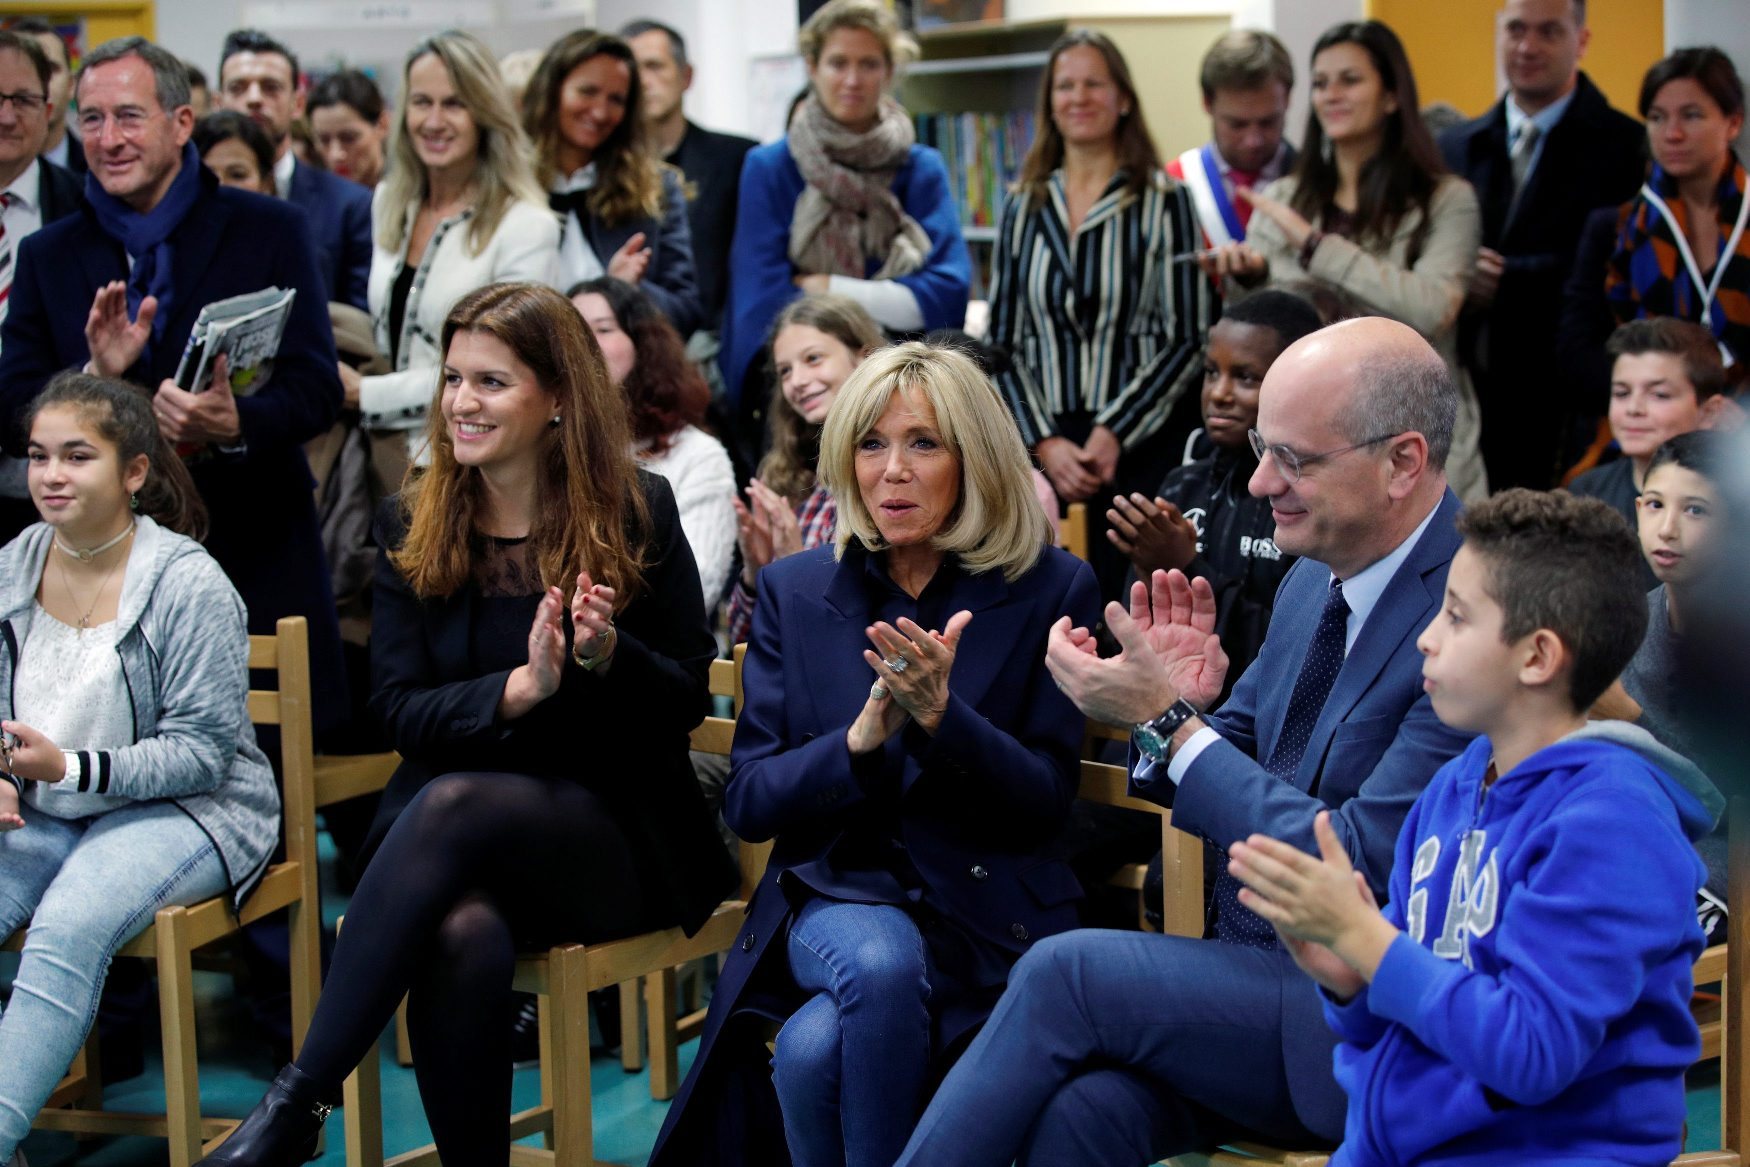 Brigitte Macron, wife of French President, French Education Minister Jean-Michel Blanquer and Marlene Schiappa, French Junior Minister for Gender Equality, applaud during a visit at a high school to discuss the fight against school bullying in Clamart, France, November 15, 2018.  REUTERS/Philippe Wojazer